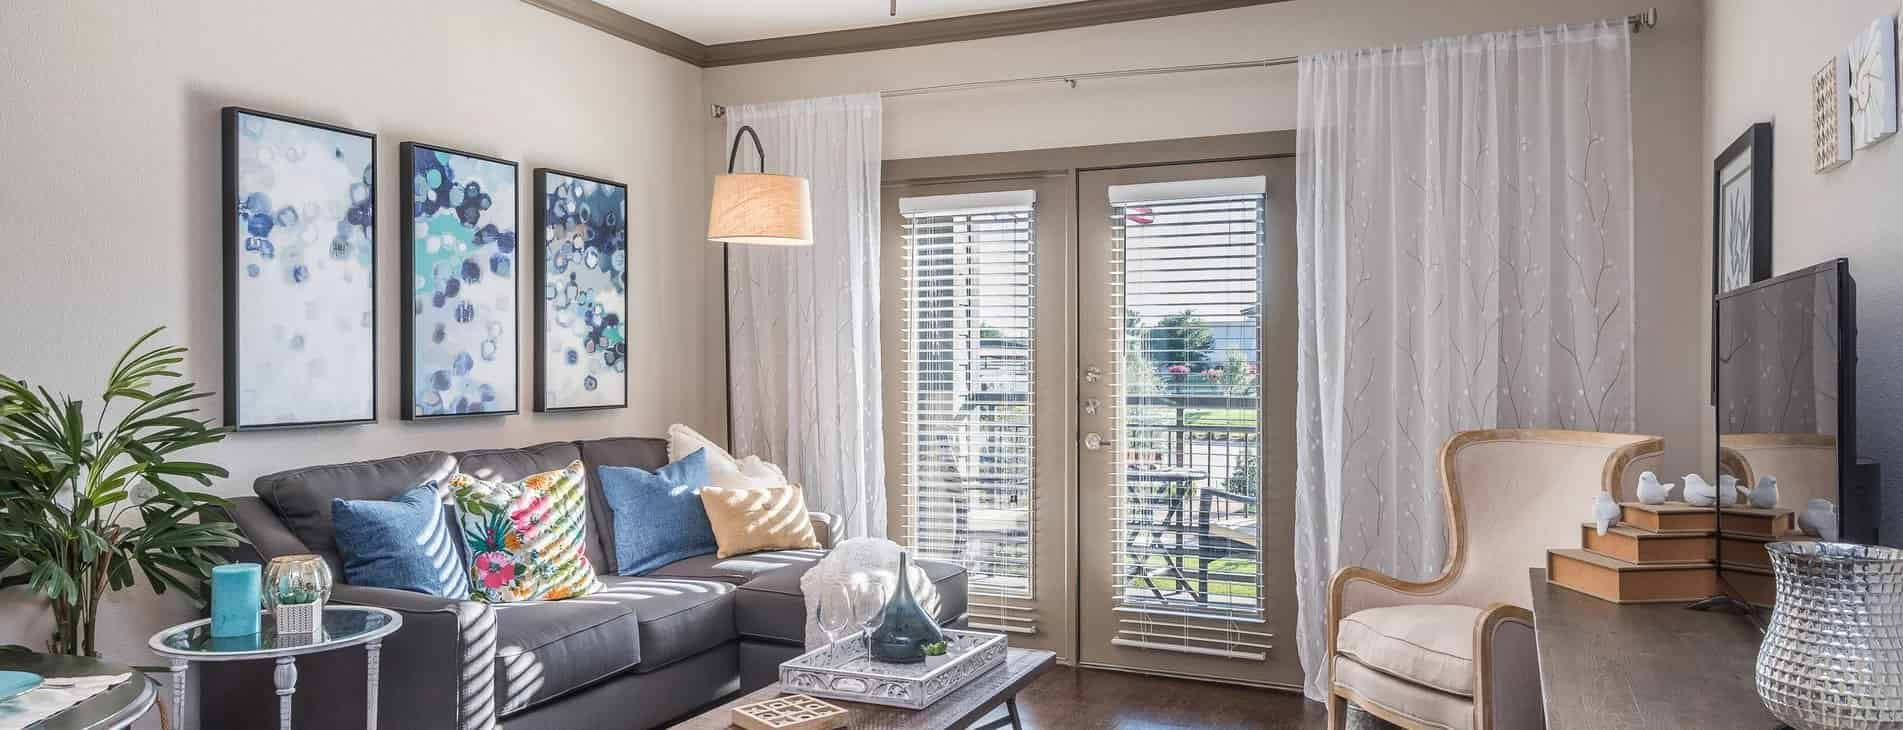 Living Room by Larkspur At Twin Creeks